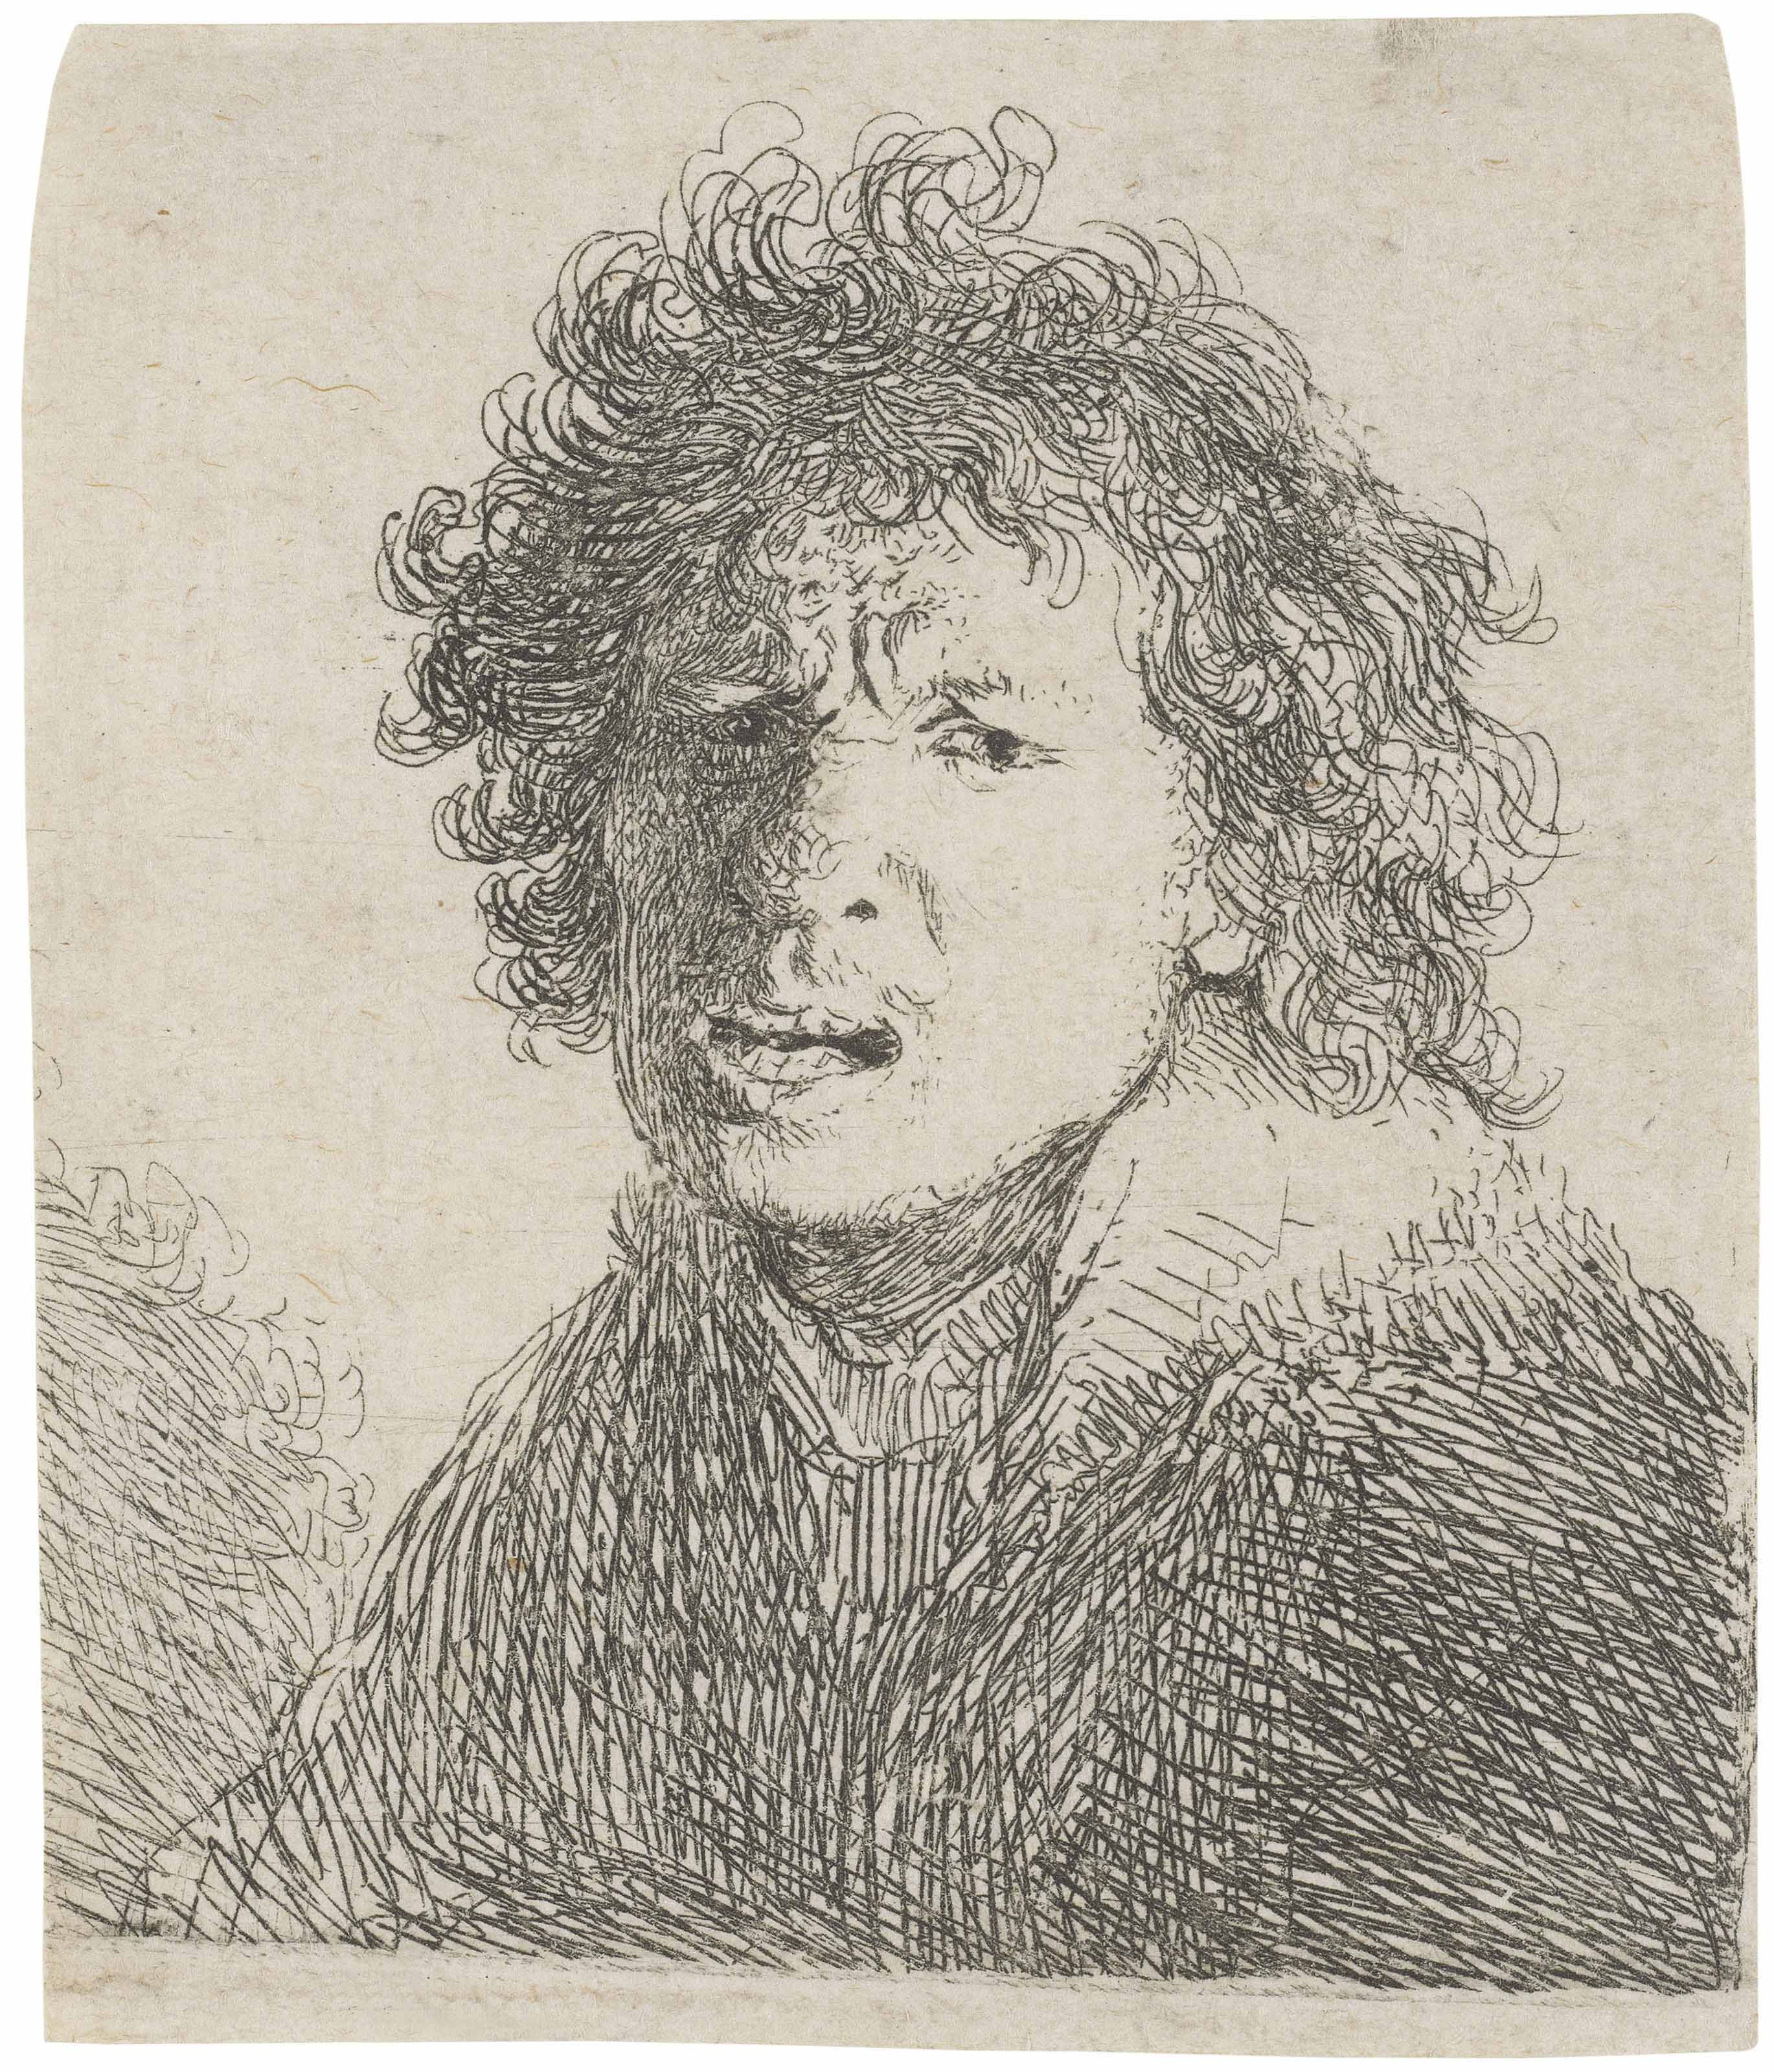 Before the mirror: Rembrandt 's self-portrait etchings ...